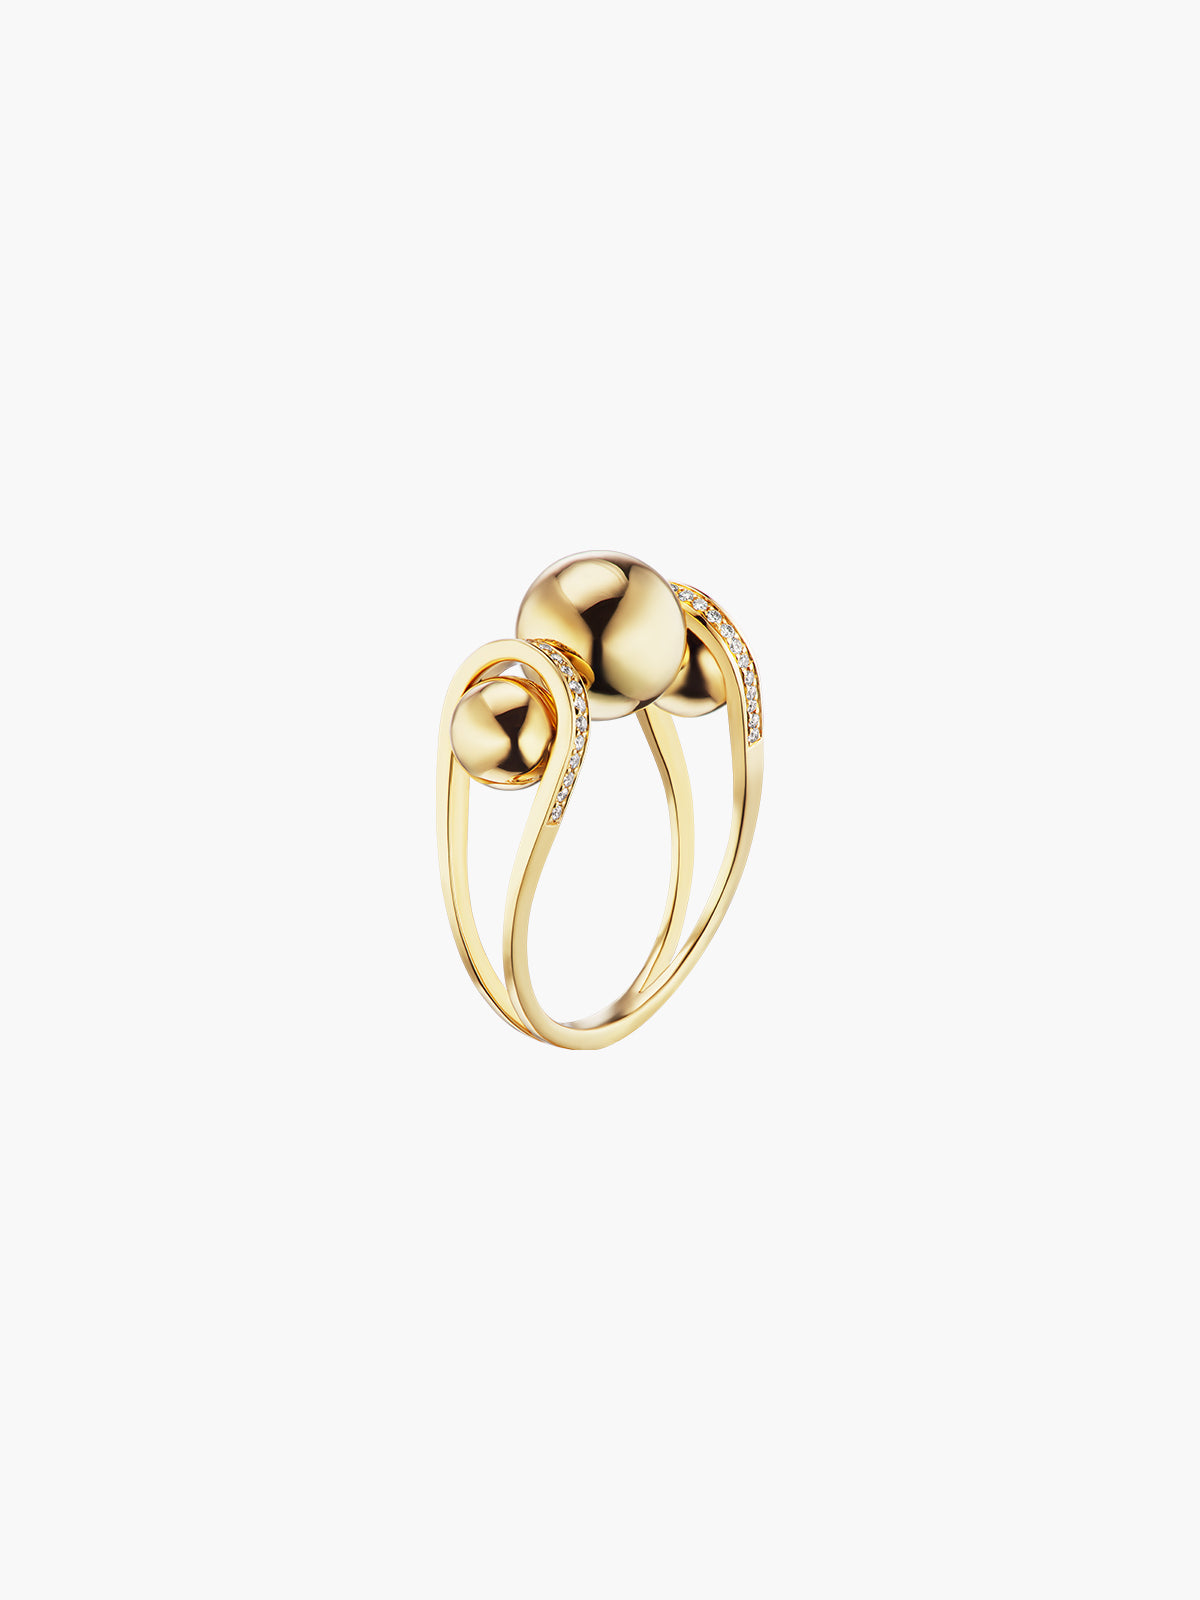 Boule D'Or Double Lariat Ring | High Polish Boule D'Or Double Lariat Ring | High Polish